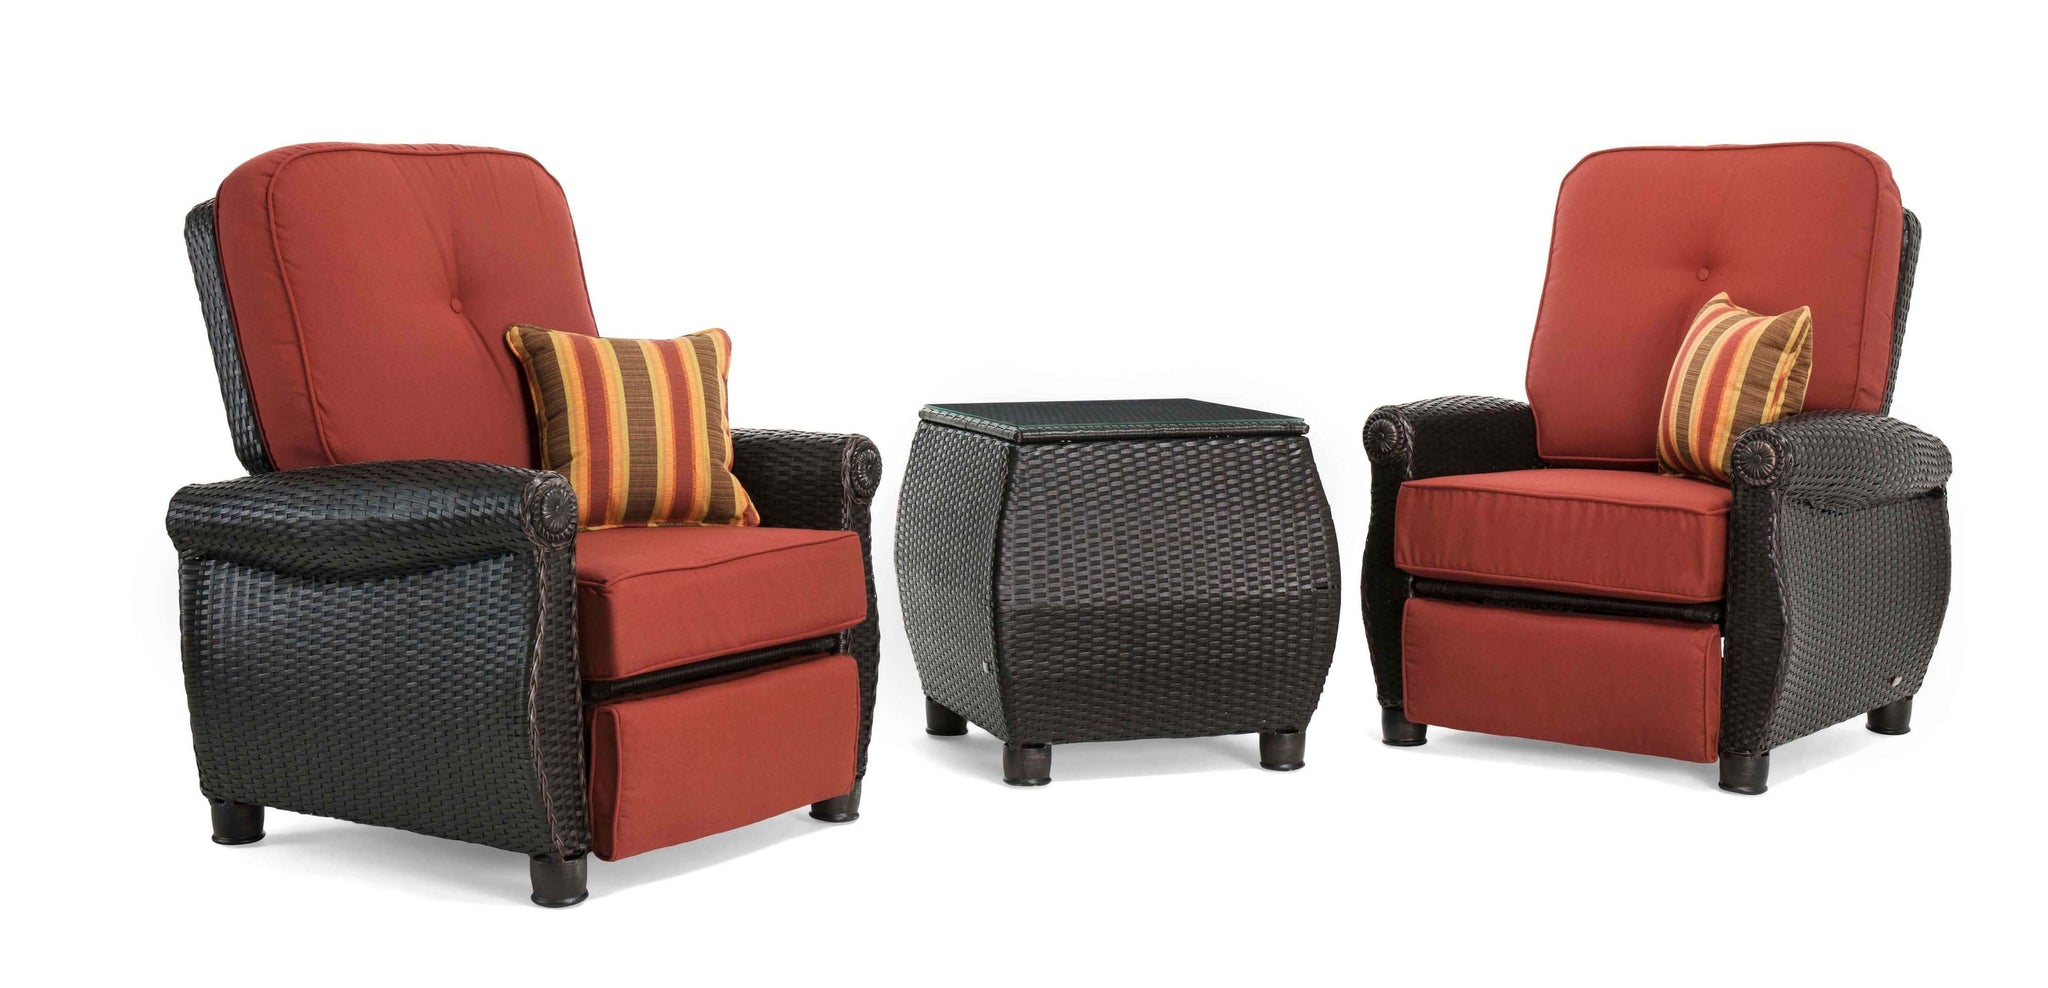 Ordinaire Breckenridge 3 Piece Patio Furniture Set: Two Recliners (Brick Red) And  Side Table